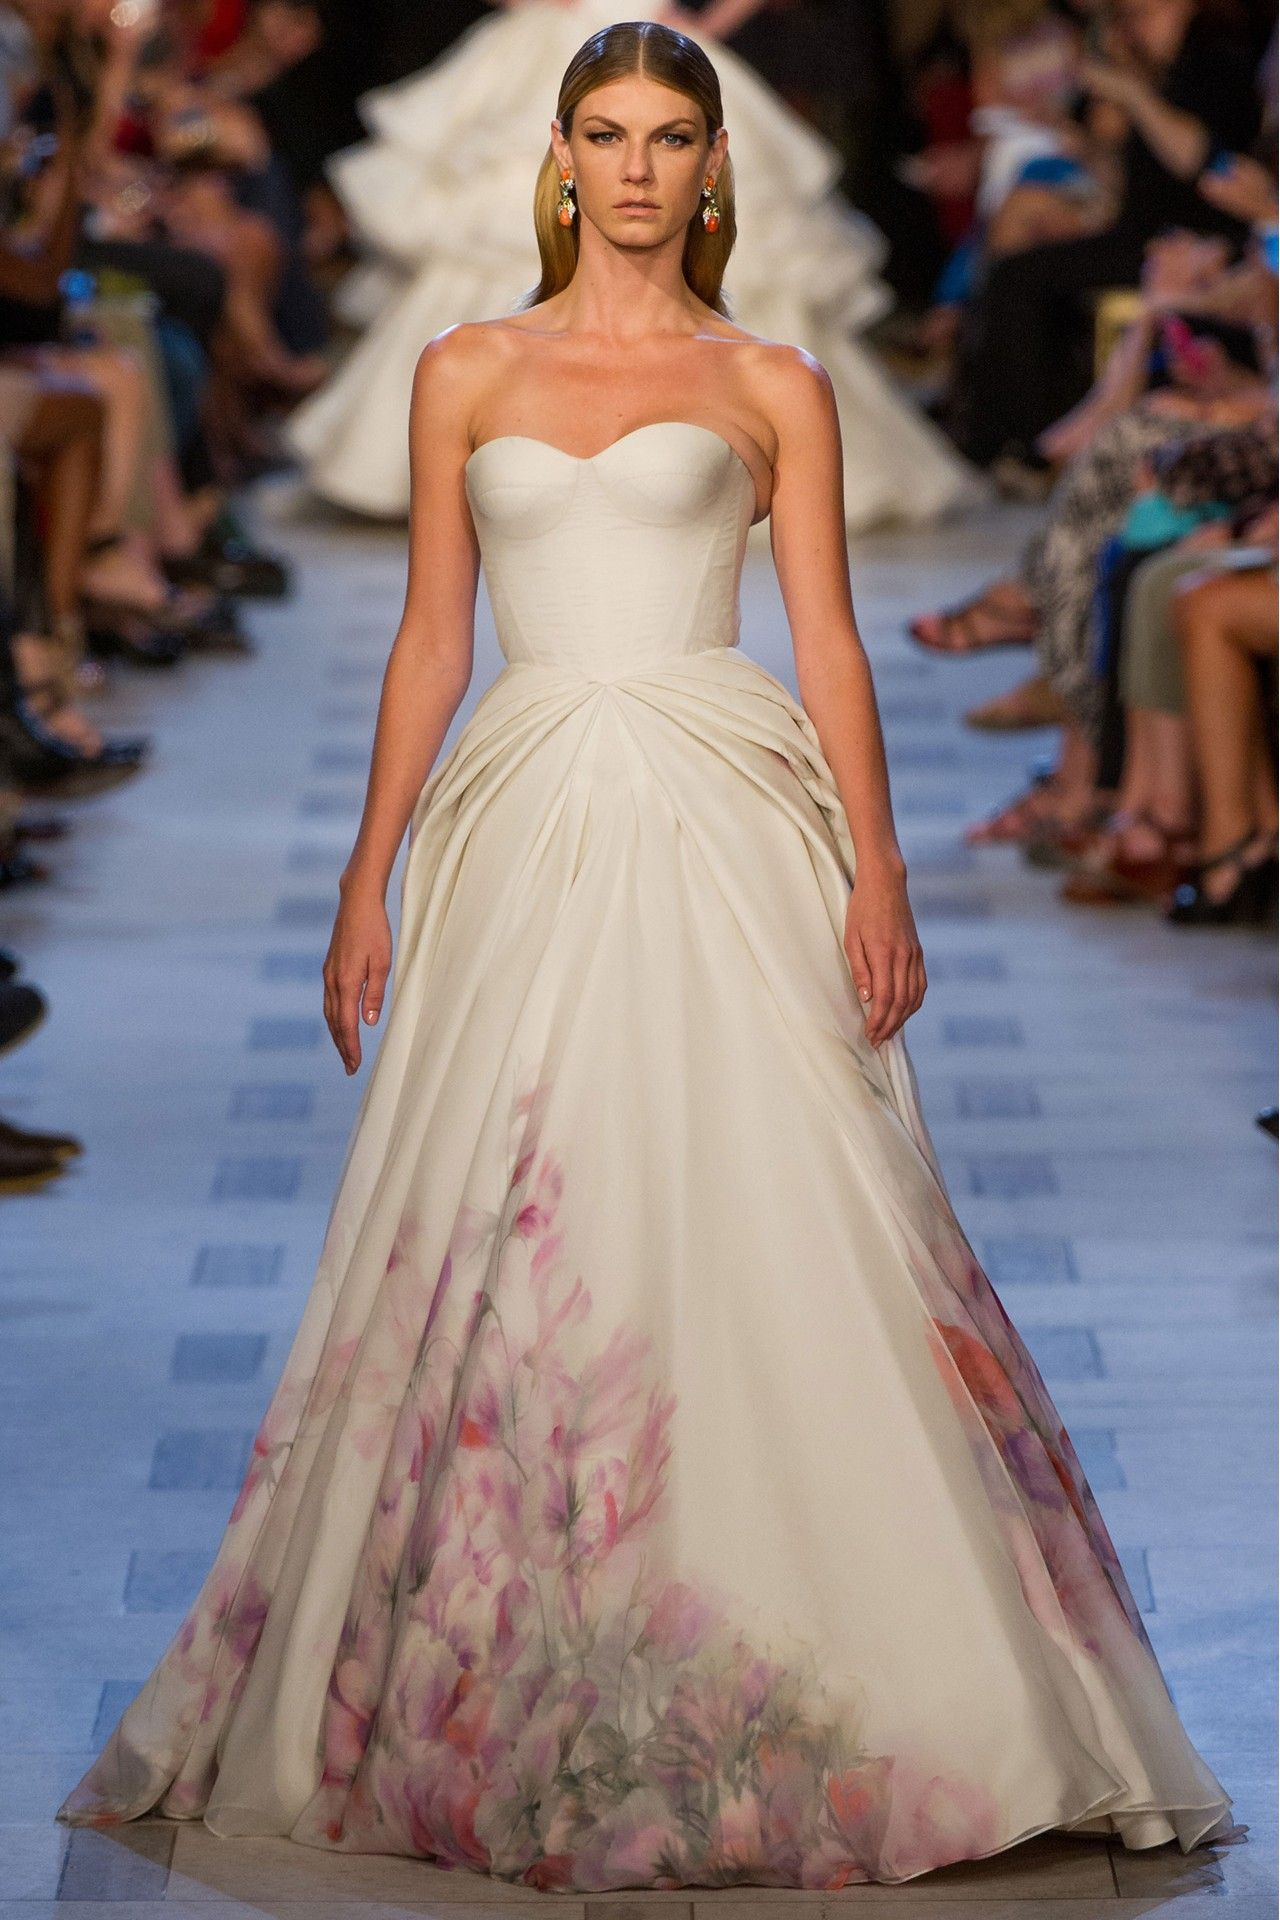 Zac posen wedding dress  And The Bride Wore Zac Posen  Oscar Dresses  Pinterest  Zac posen